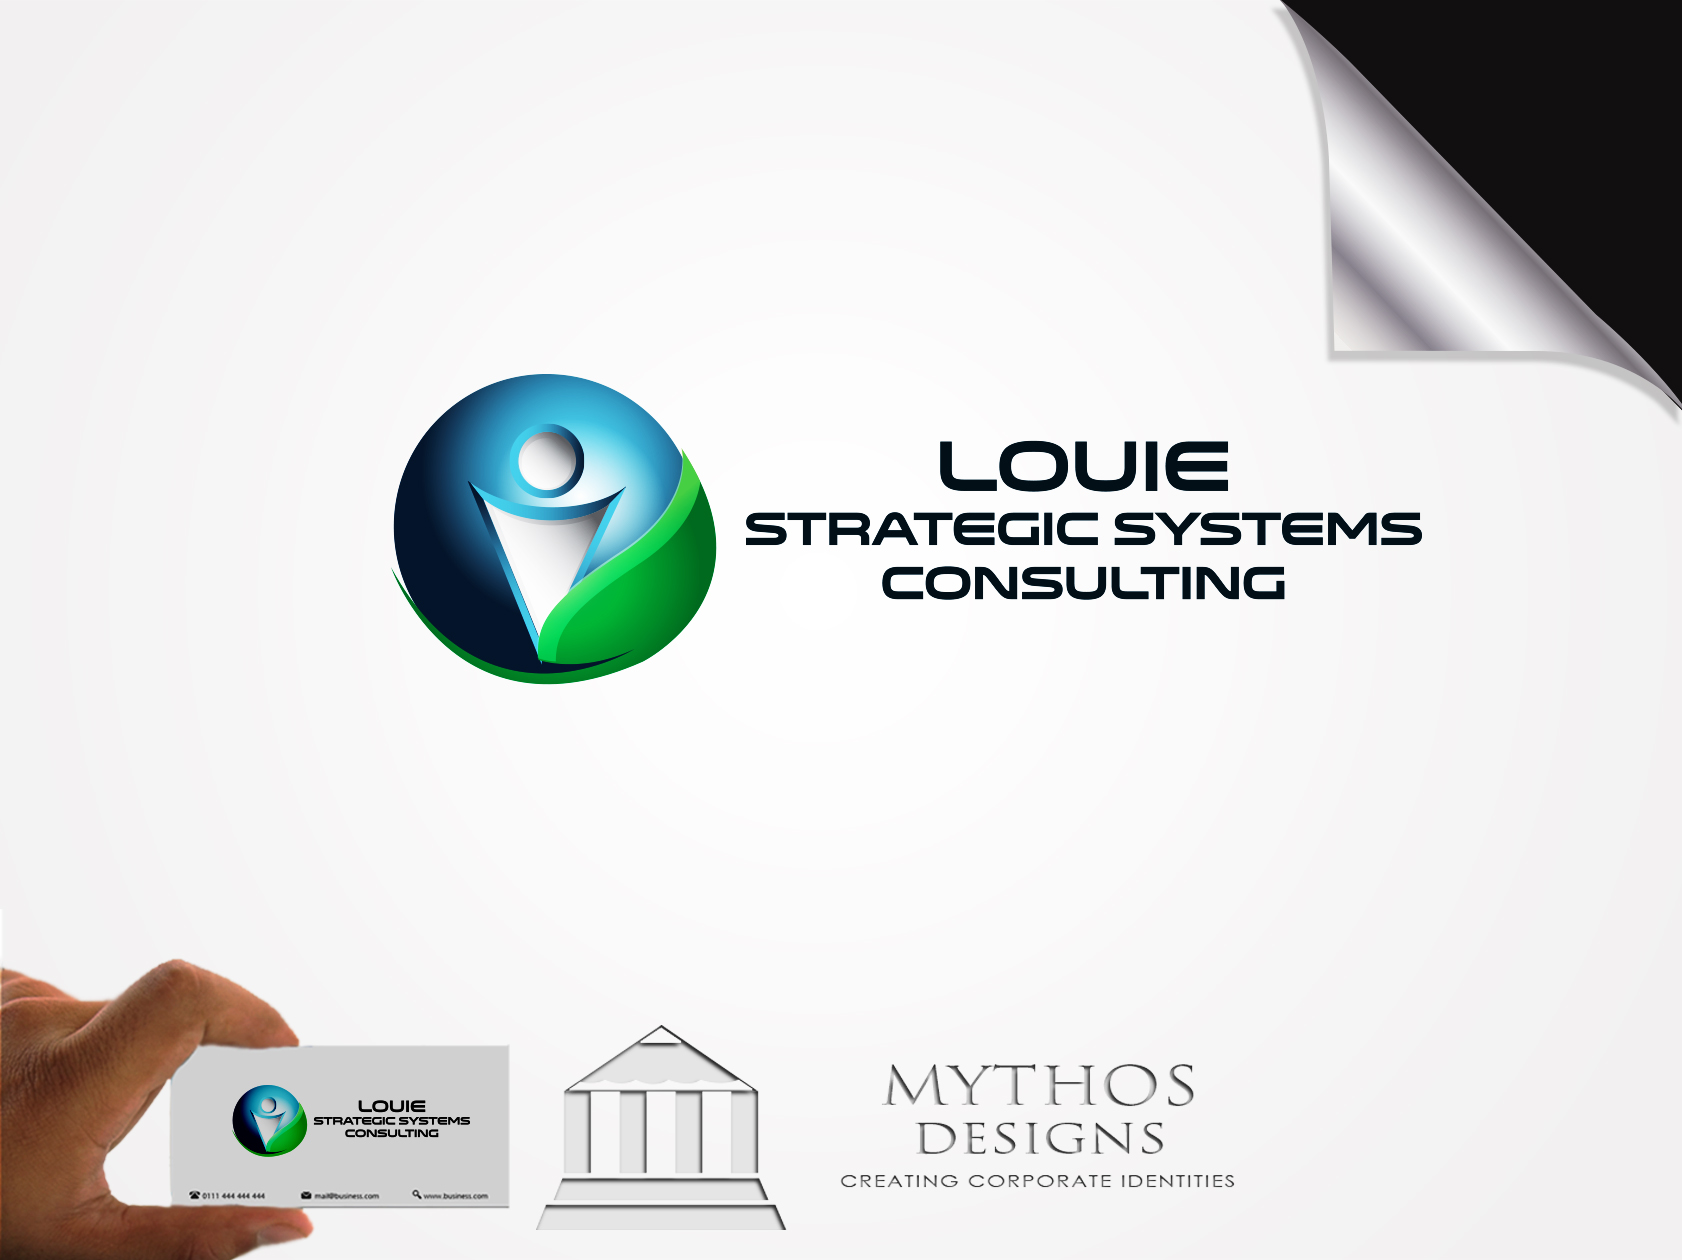 Logo Design by Mythos Designs - Entry No. 141 in the Logo Design Contest Artistic Logo Design for Louie Strategic Systems Consulting.